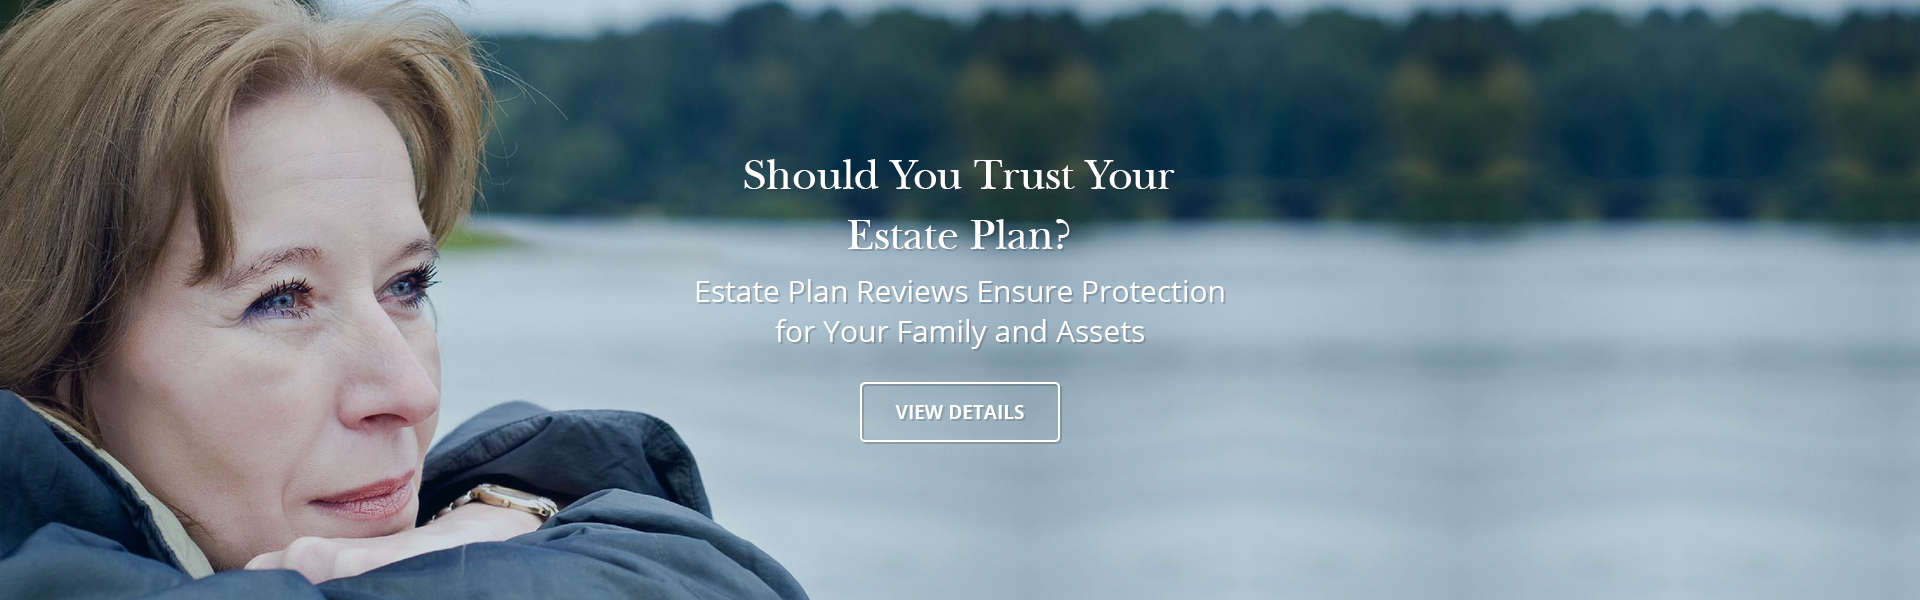 Should You Trust Your Estate Plan?